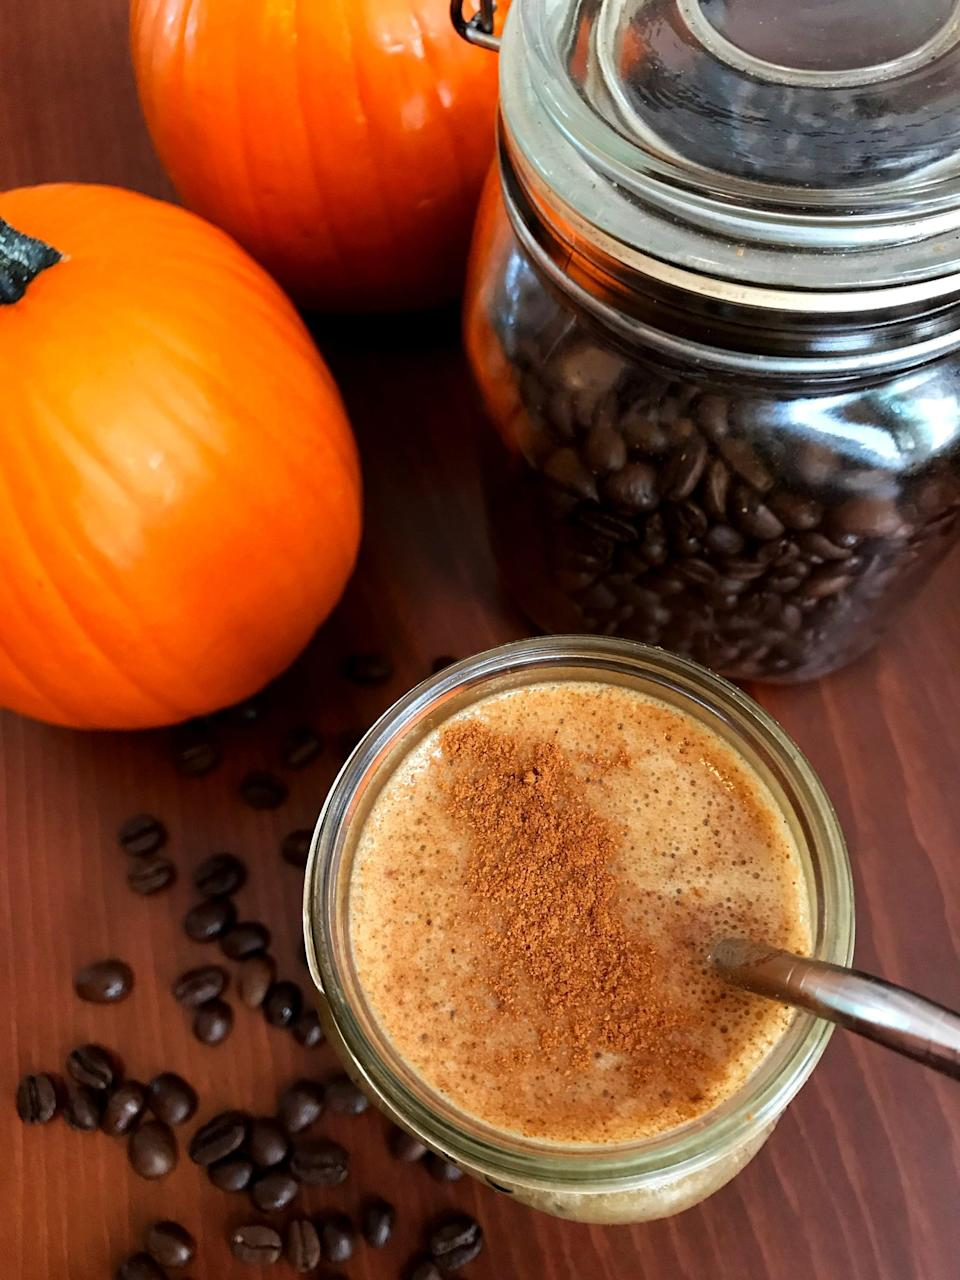 """<p>This will easily become your go-to smoothie recipe, not only for the irresistible pumpkin-pie-like flavor, but also because, for just 337 calories, it offers 17 grams of protein. </p> <p><strong>Get the recipe:</strong> <a href=""""https://www.popsugar.com/fitness/Pumpkin-Spice-Latte-Protein-Smoothie-44075740"""" class=""""link rapid-noclick-resp"""" rel=""""nofollow noopener"""" target=""""_blank"""" data-ylk=""""slk:vegan pumpkin spice latte protein smoothie"""">vegan pumpkin spice latte protein smoothie</a></p>"""